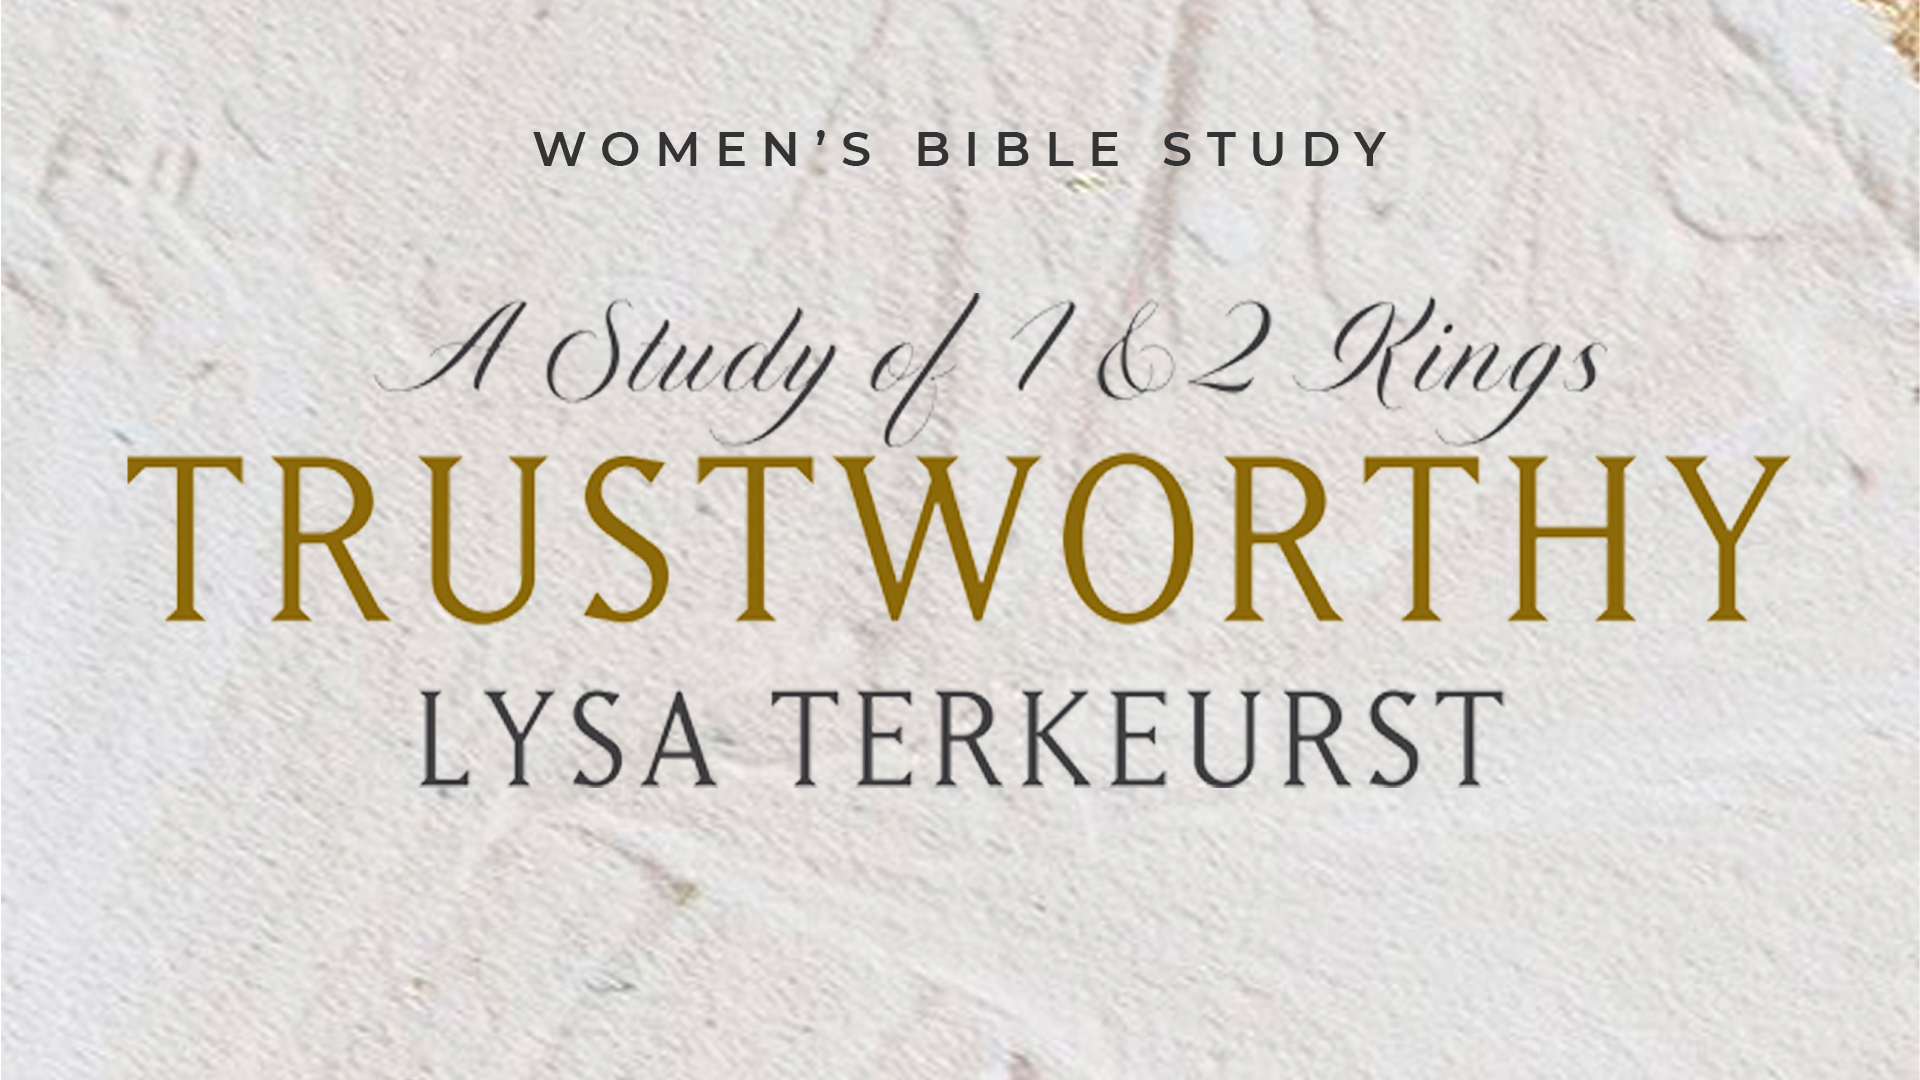 OKC | Women's Bible Study at Victory Church